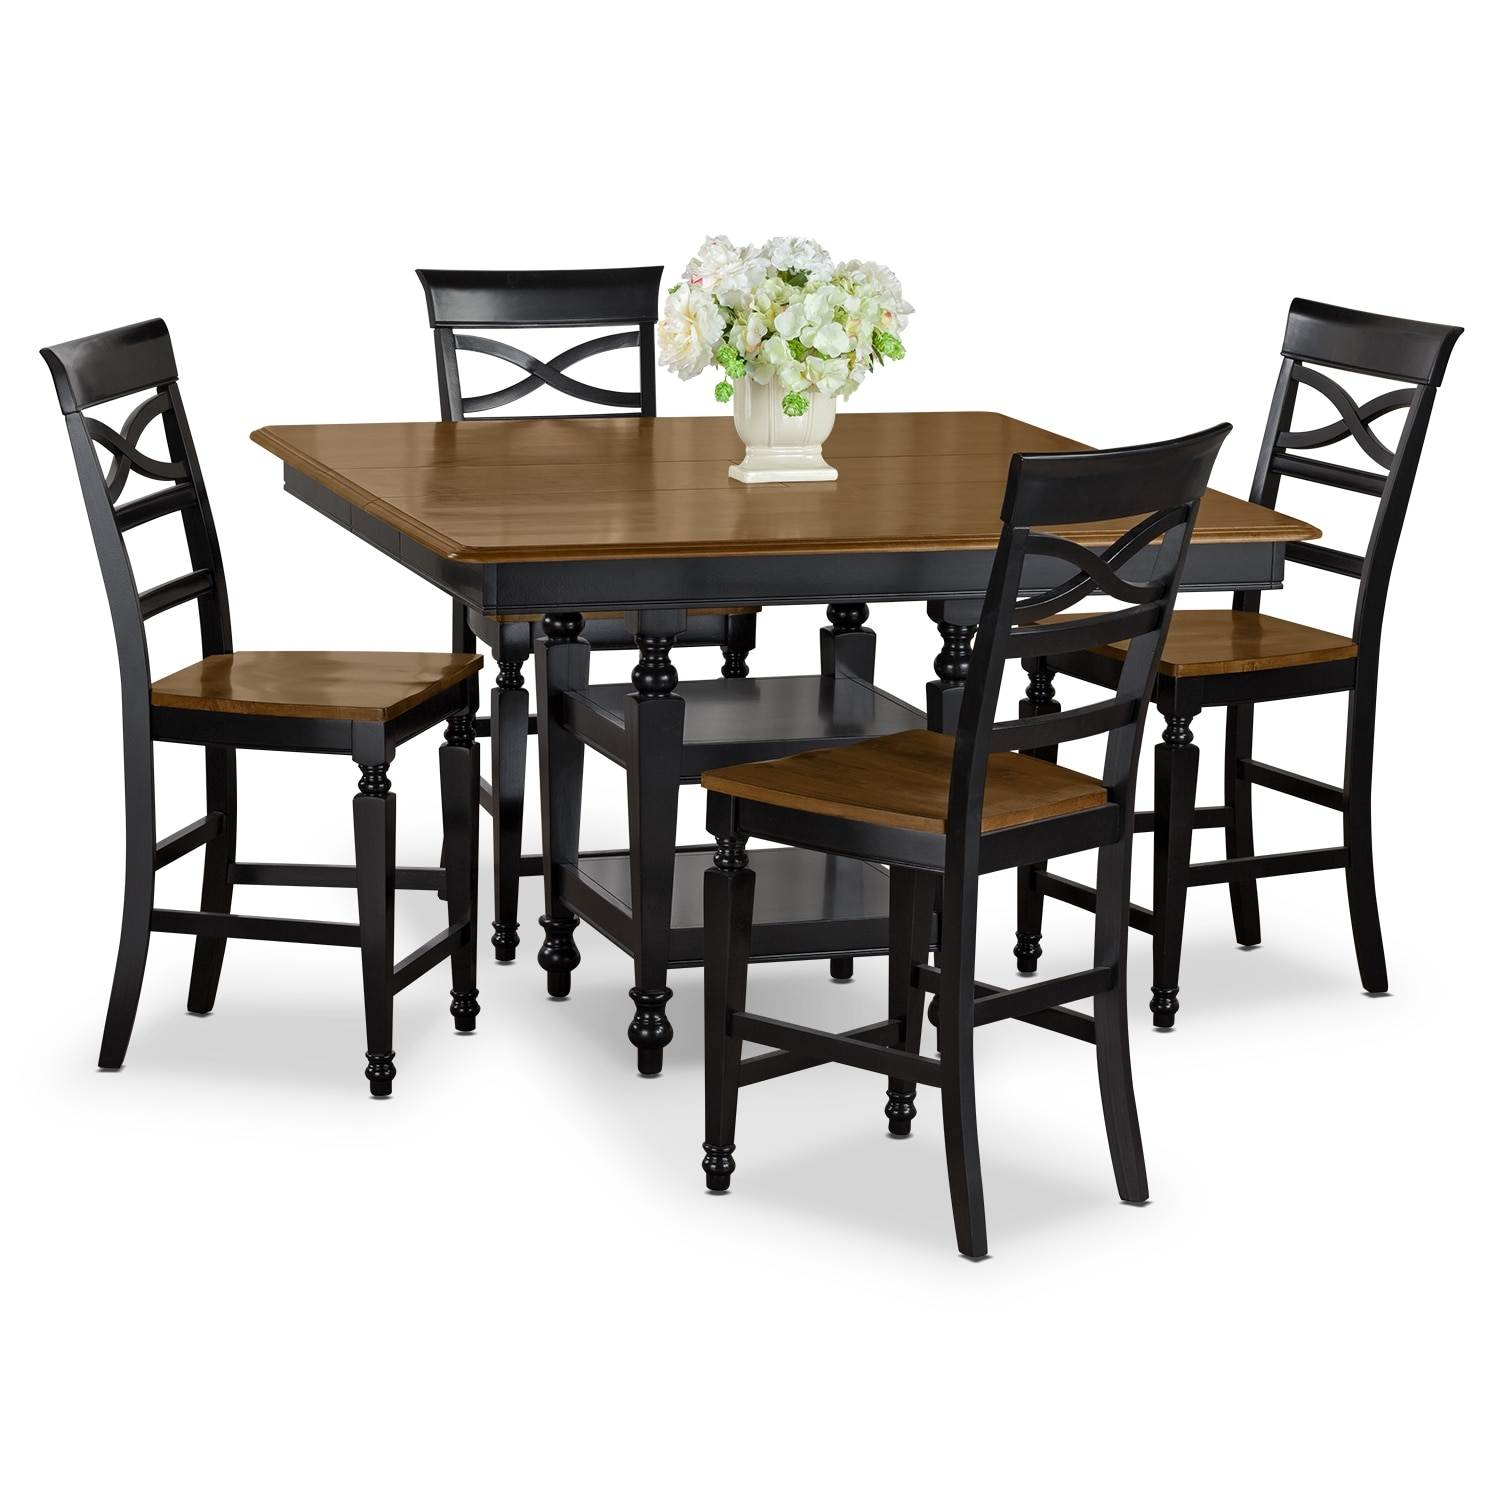 Chesapeake 5 Pc. Counter-Height Dinette